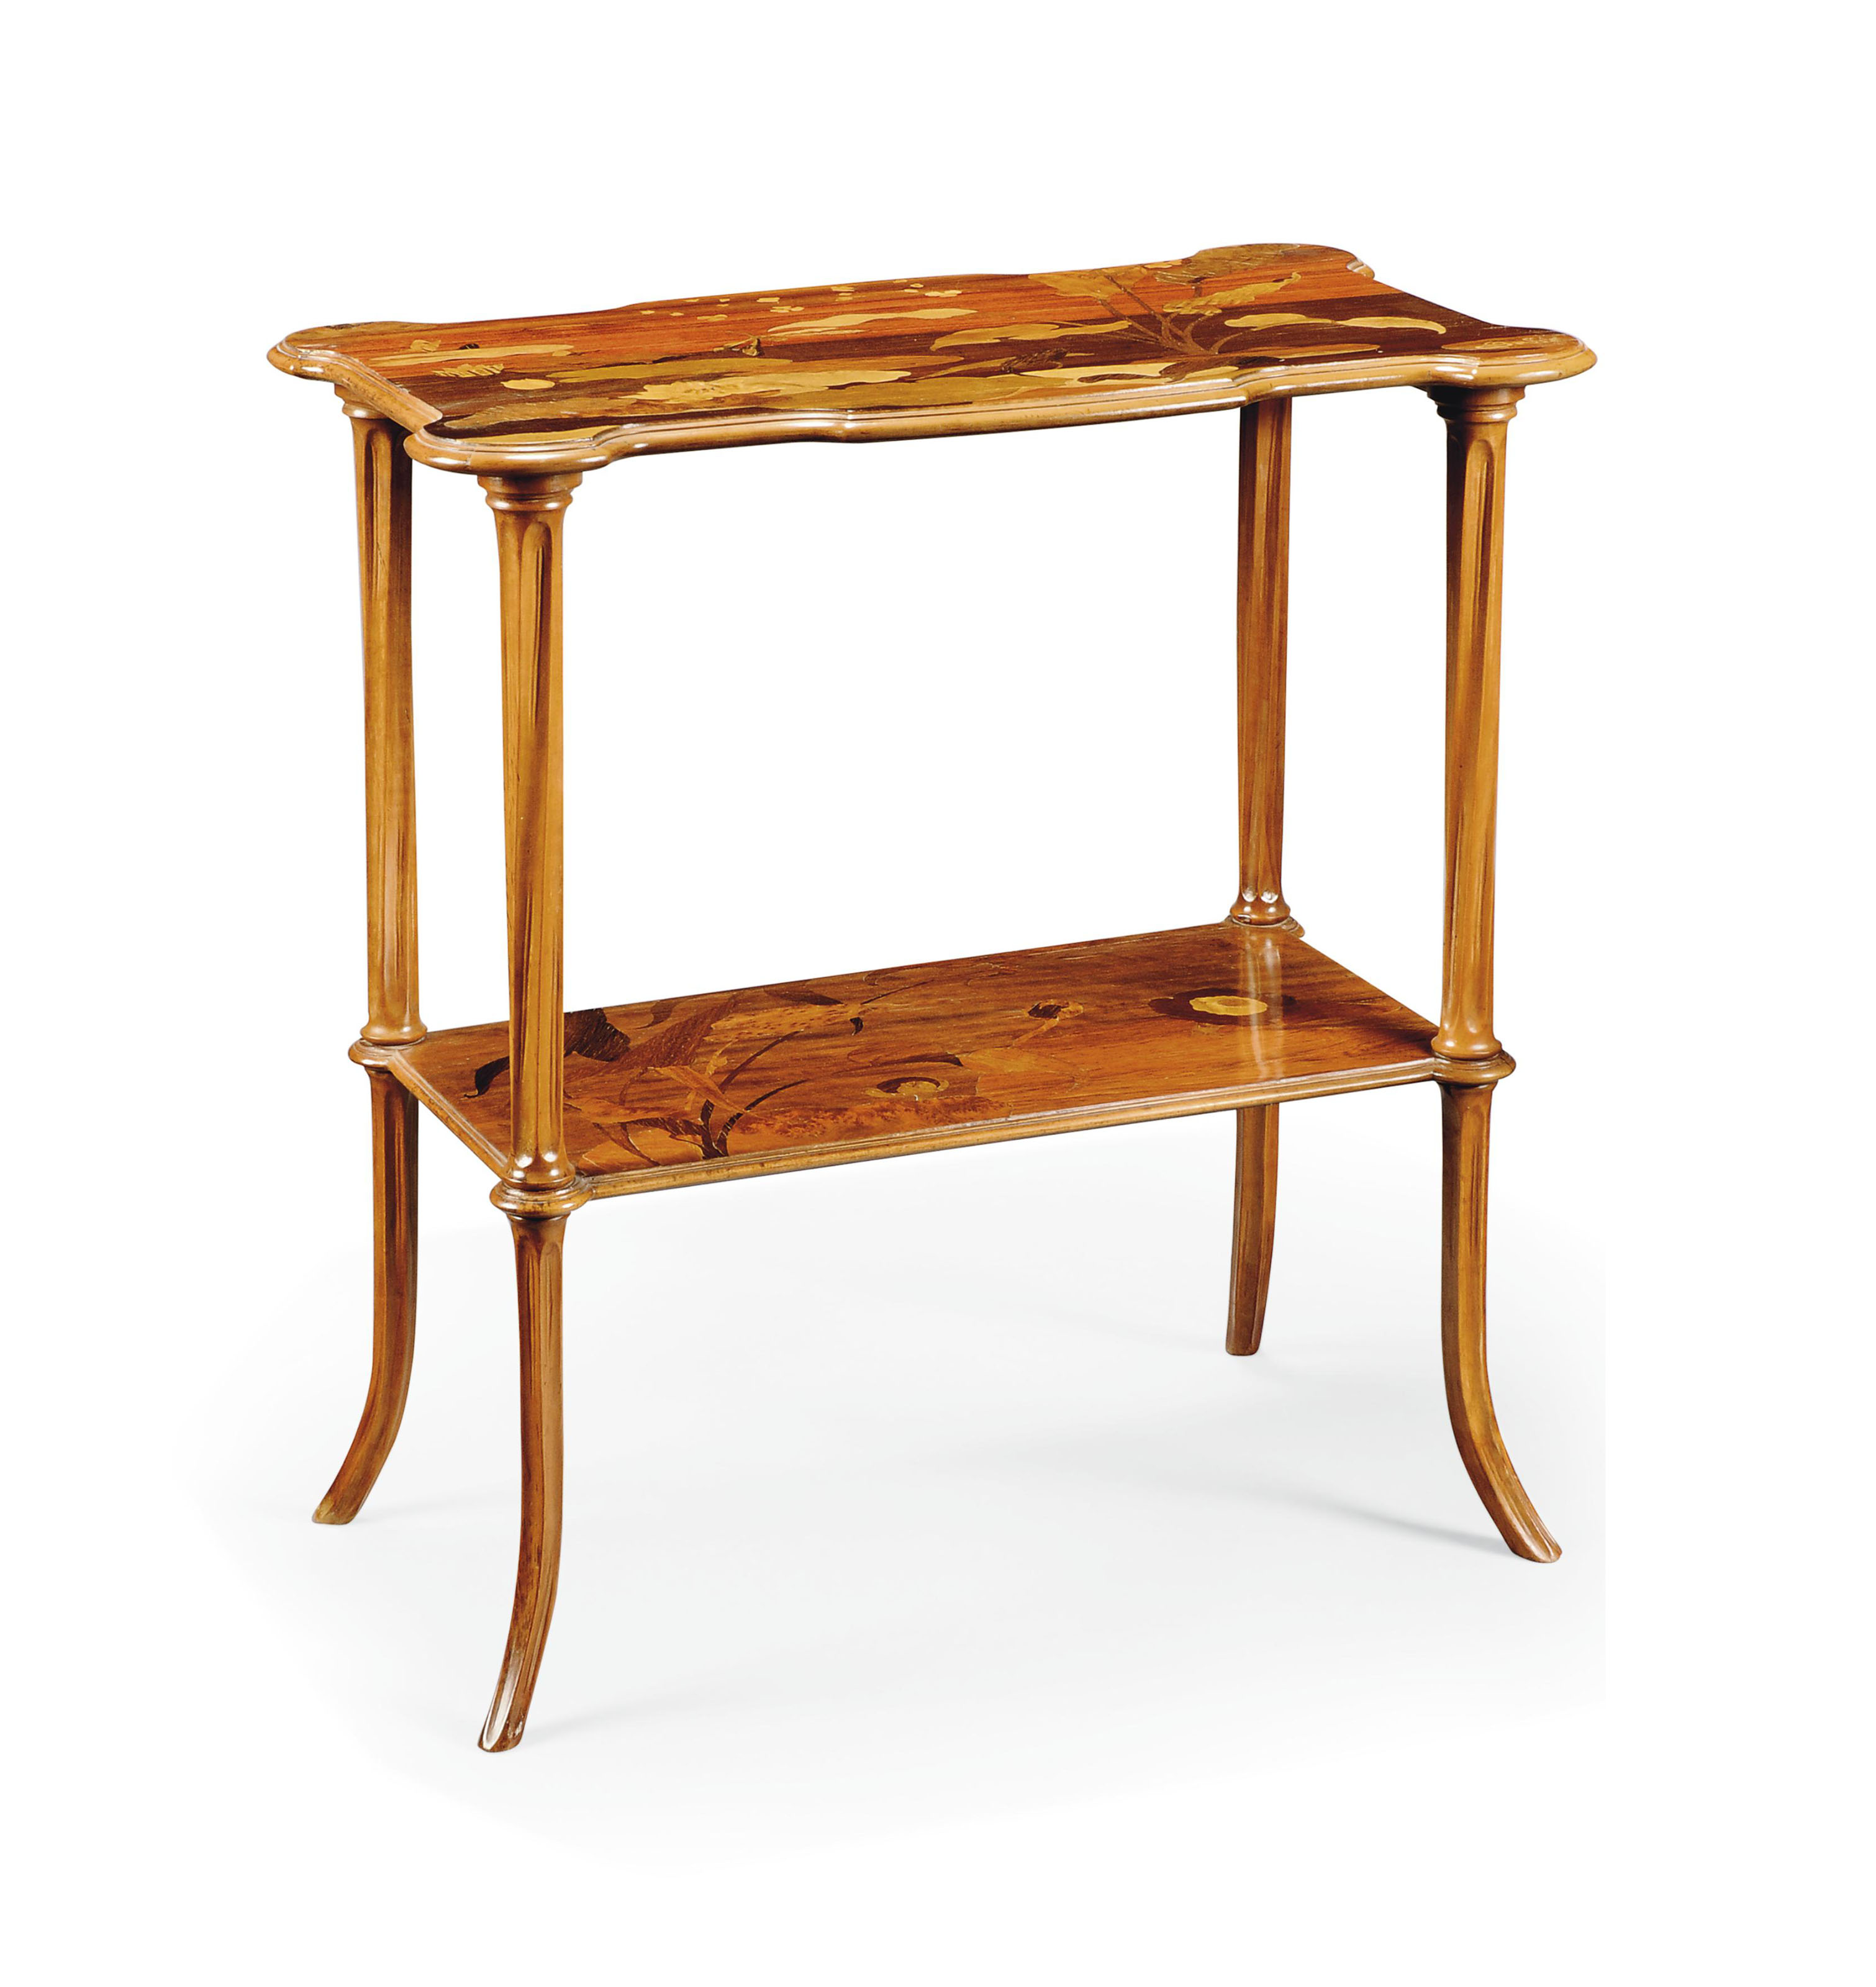 A GALLÉ MARQUETRY TWO-TIER OCCASIONAL TABLE